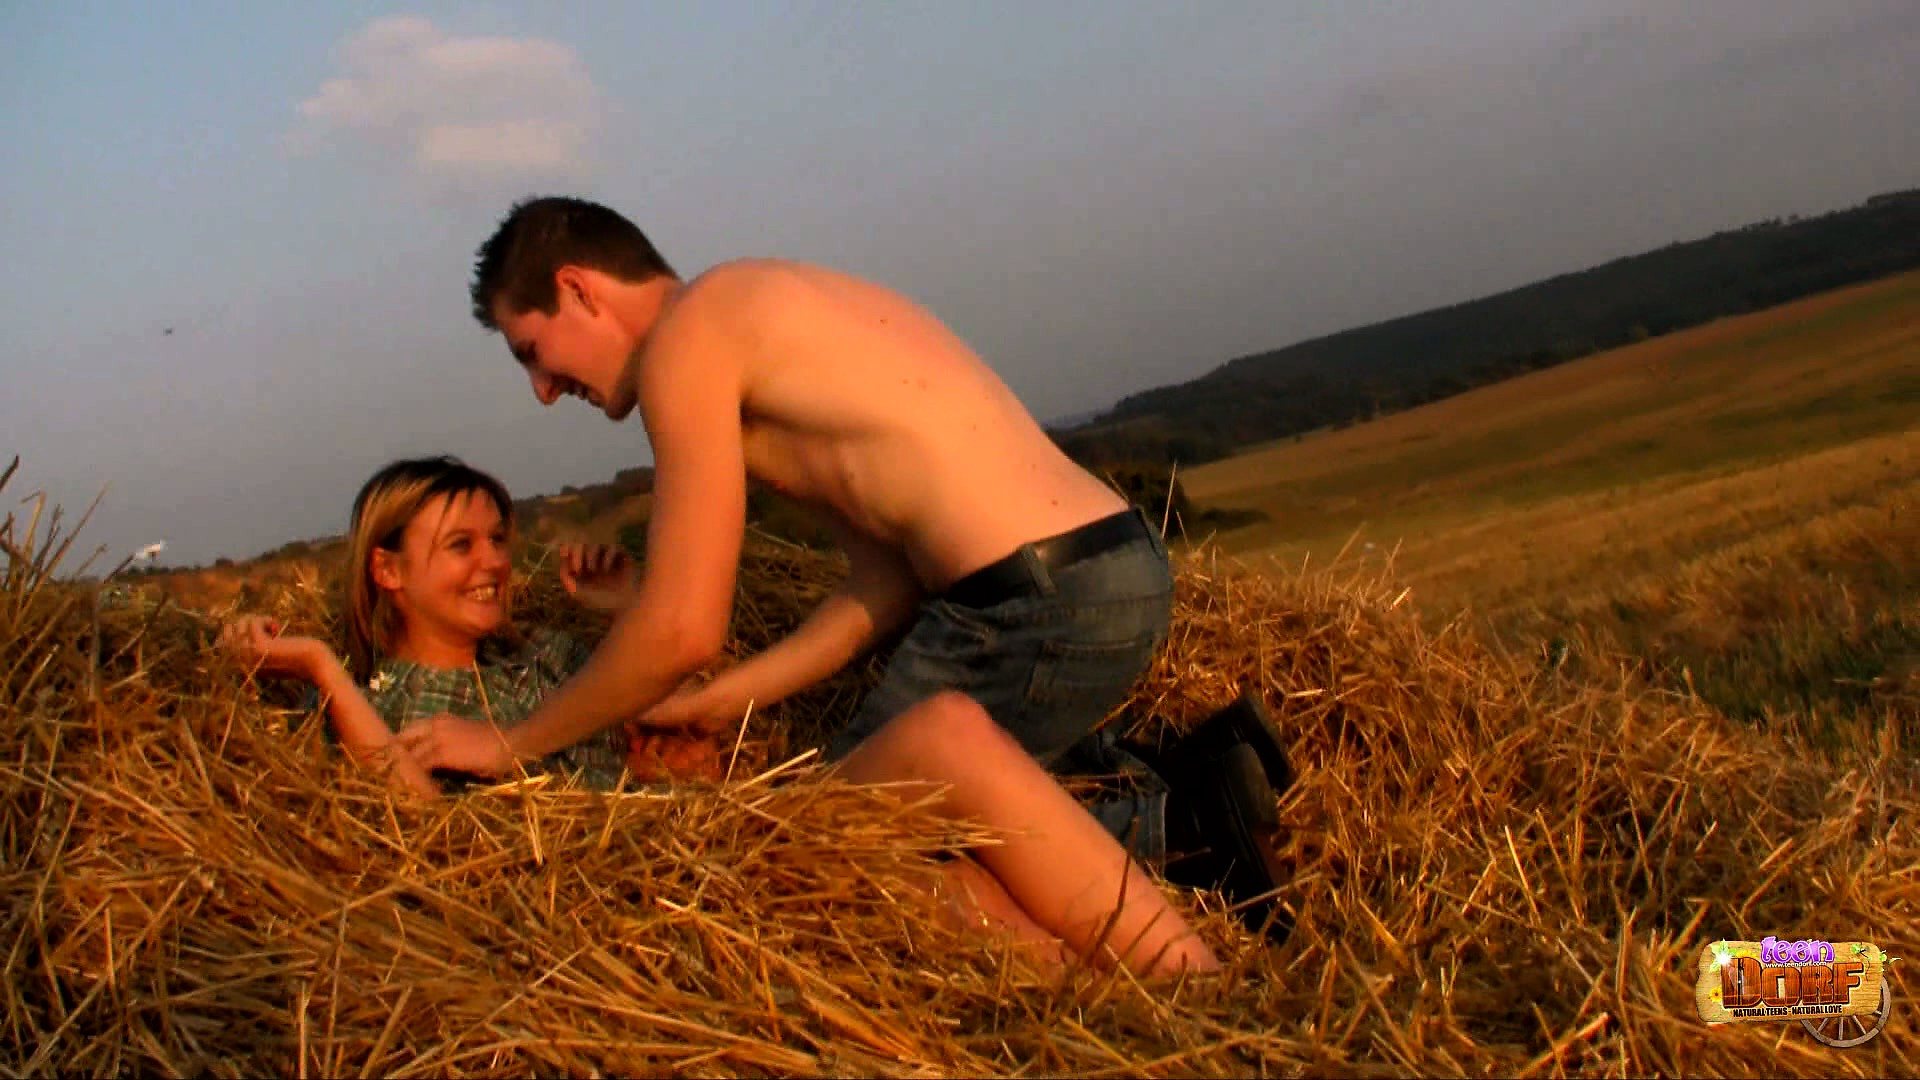 Porno Video of In The Field And With The Sun On Their Bodies, Dominika And Havel Satisfy Their Needs